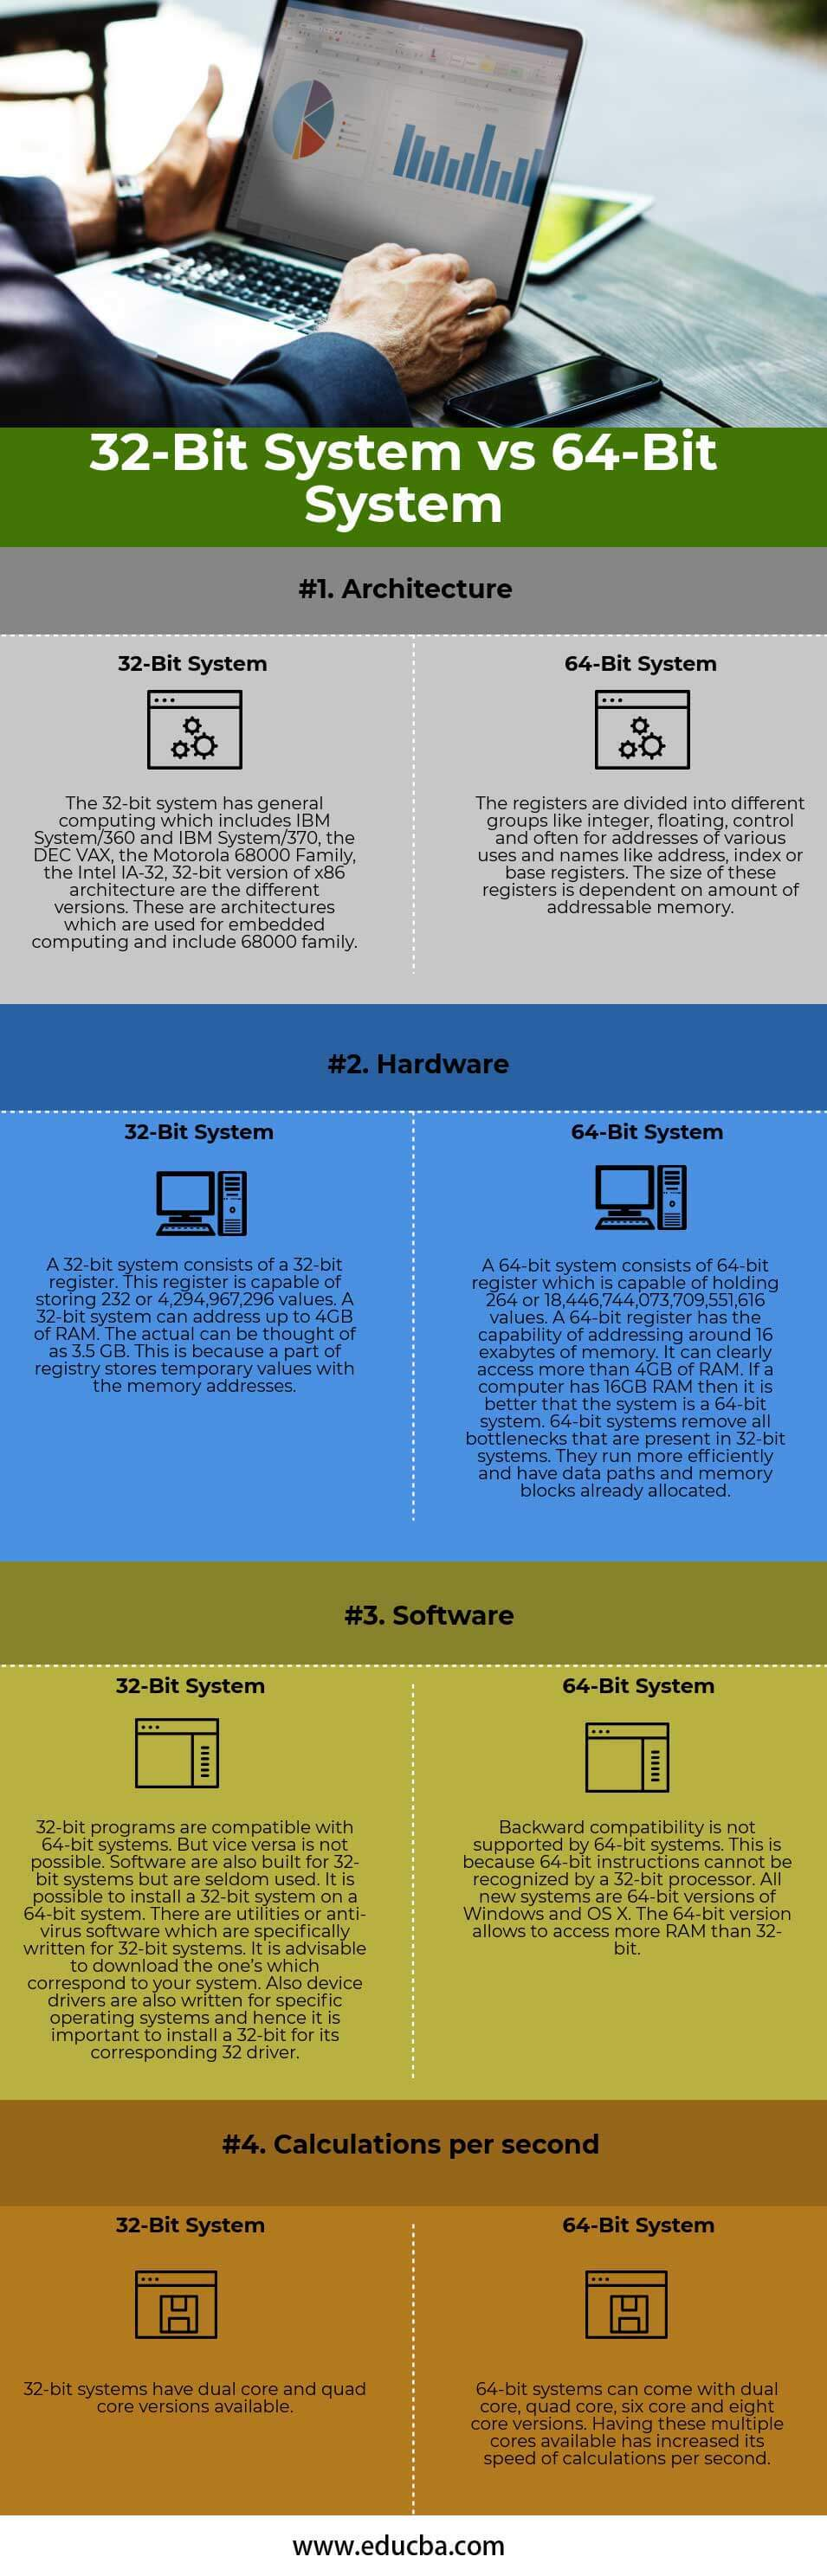 32-Bit vs 64-Bit Operating System | Which One is Better?